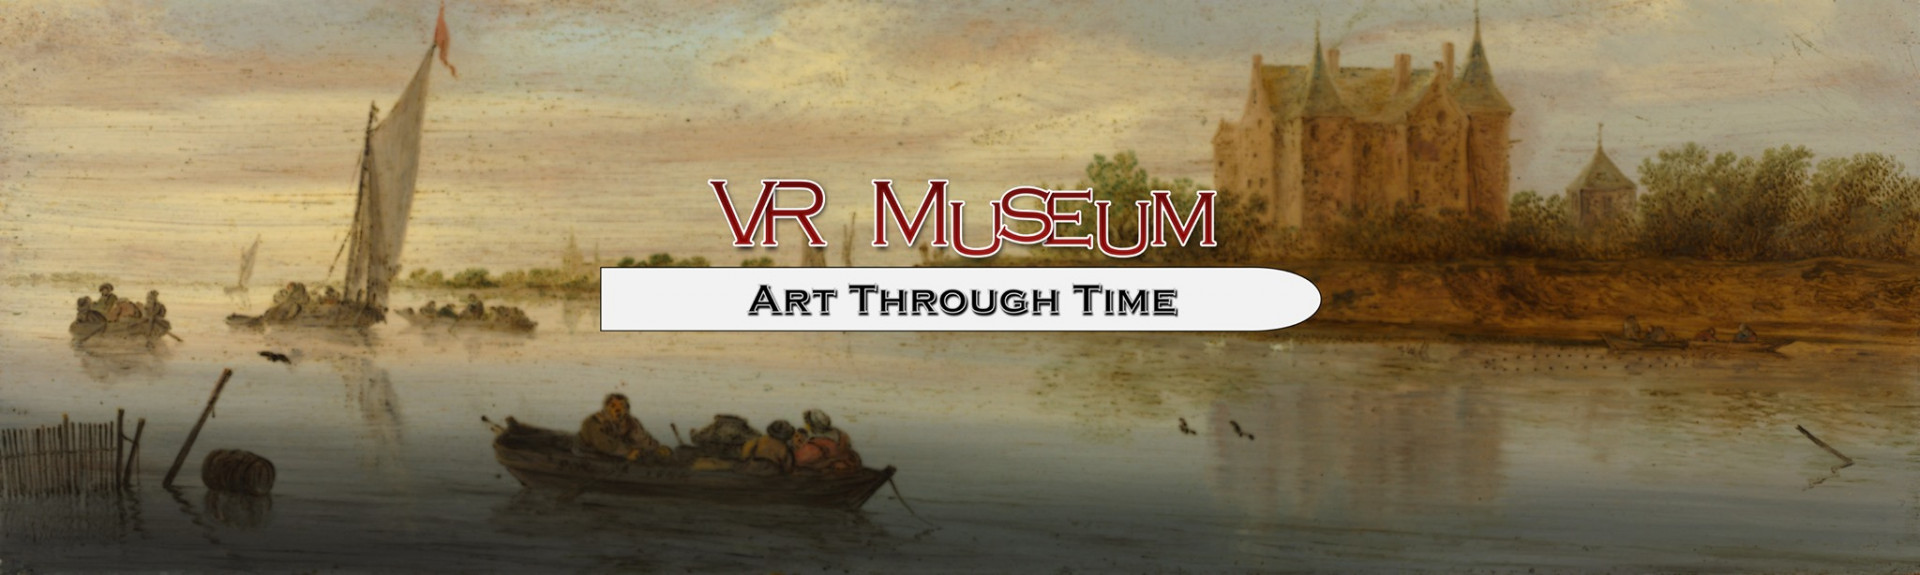 VR Museum: Art Through Time